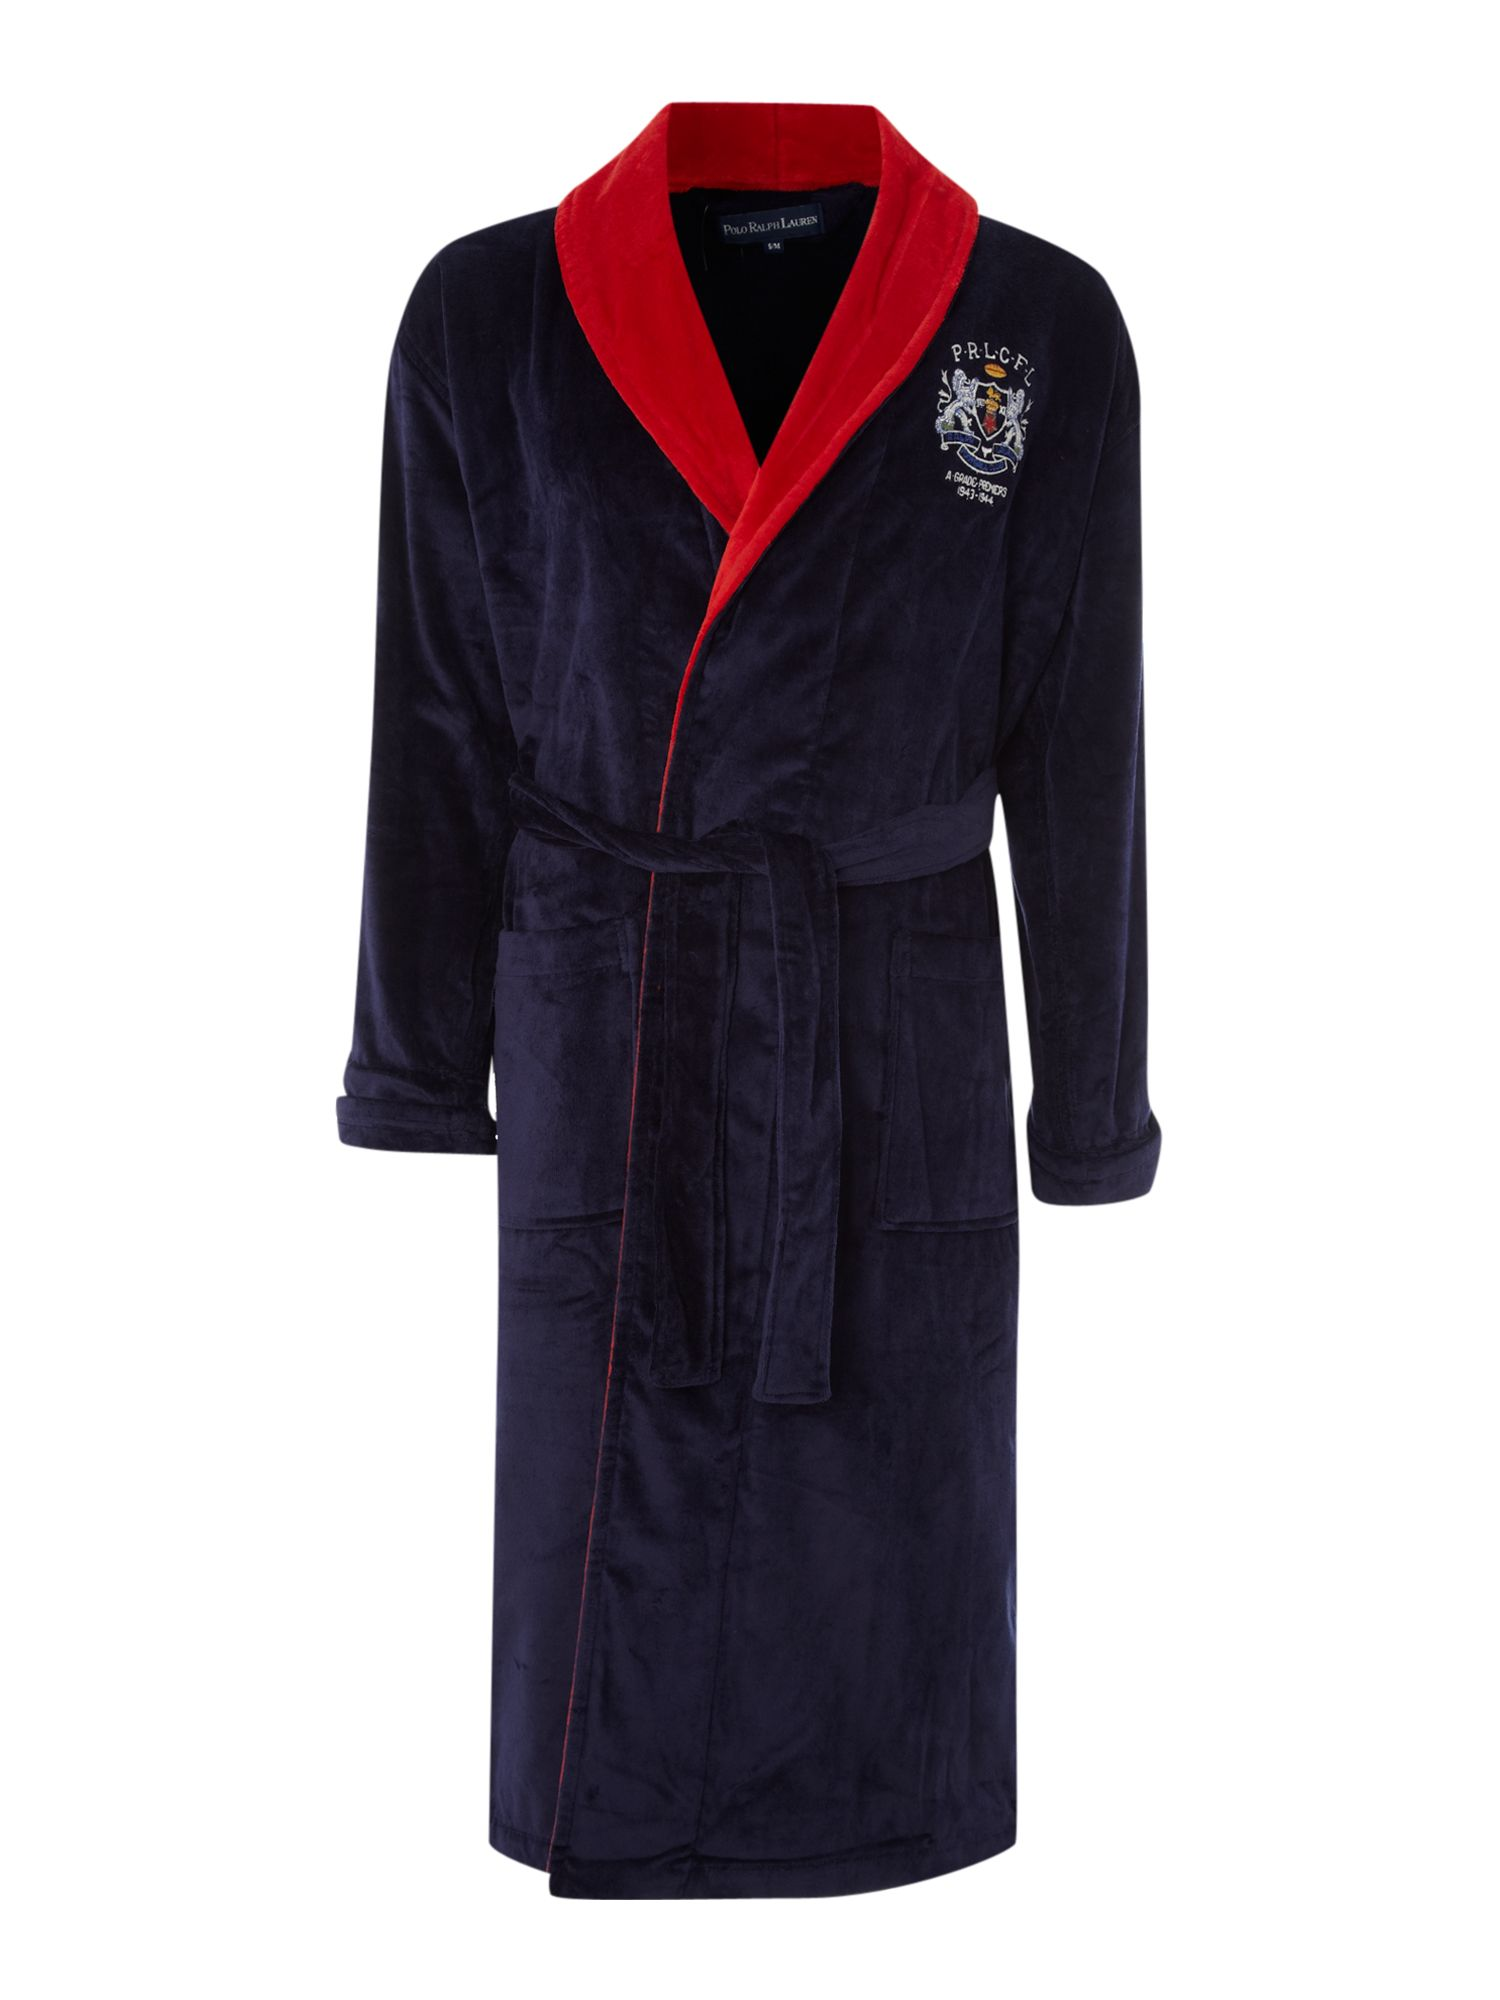 polo ralph lauren contrast collar robe in blue for men navy lyst. Black Bedroom Furniture Sets. Home Design Ideas